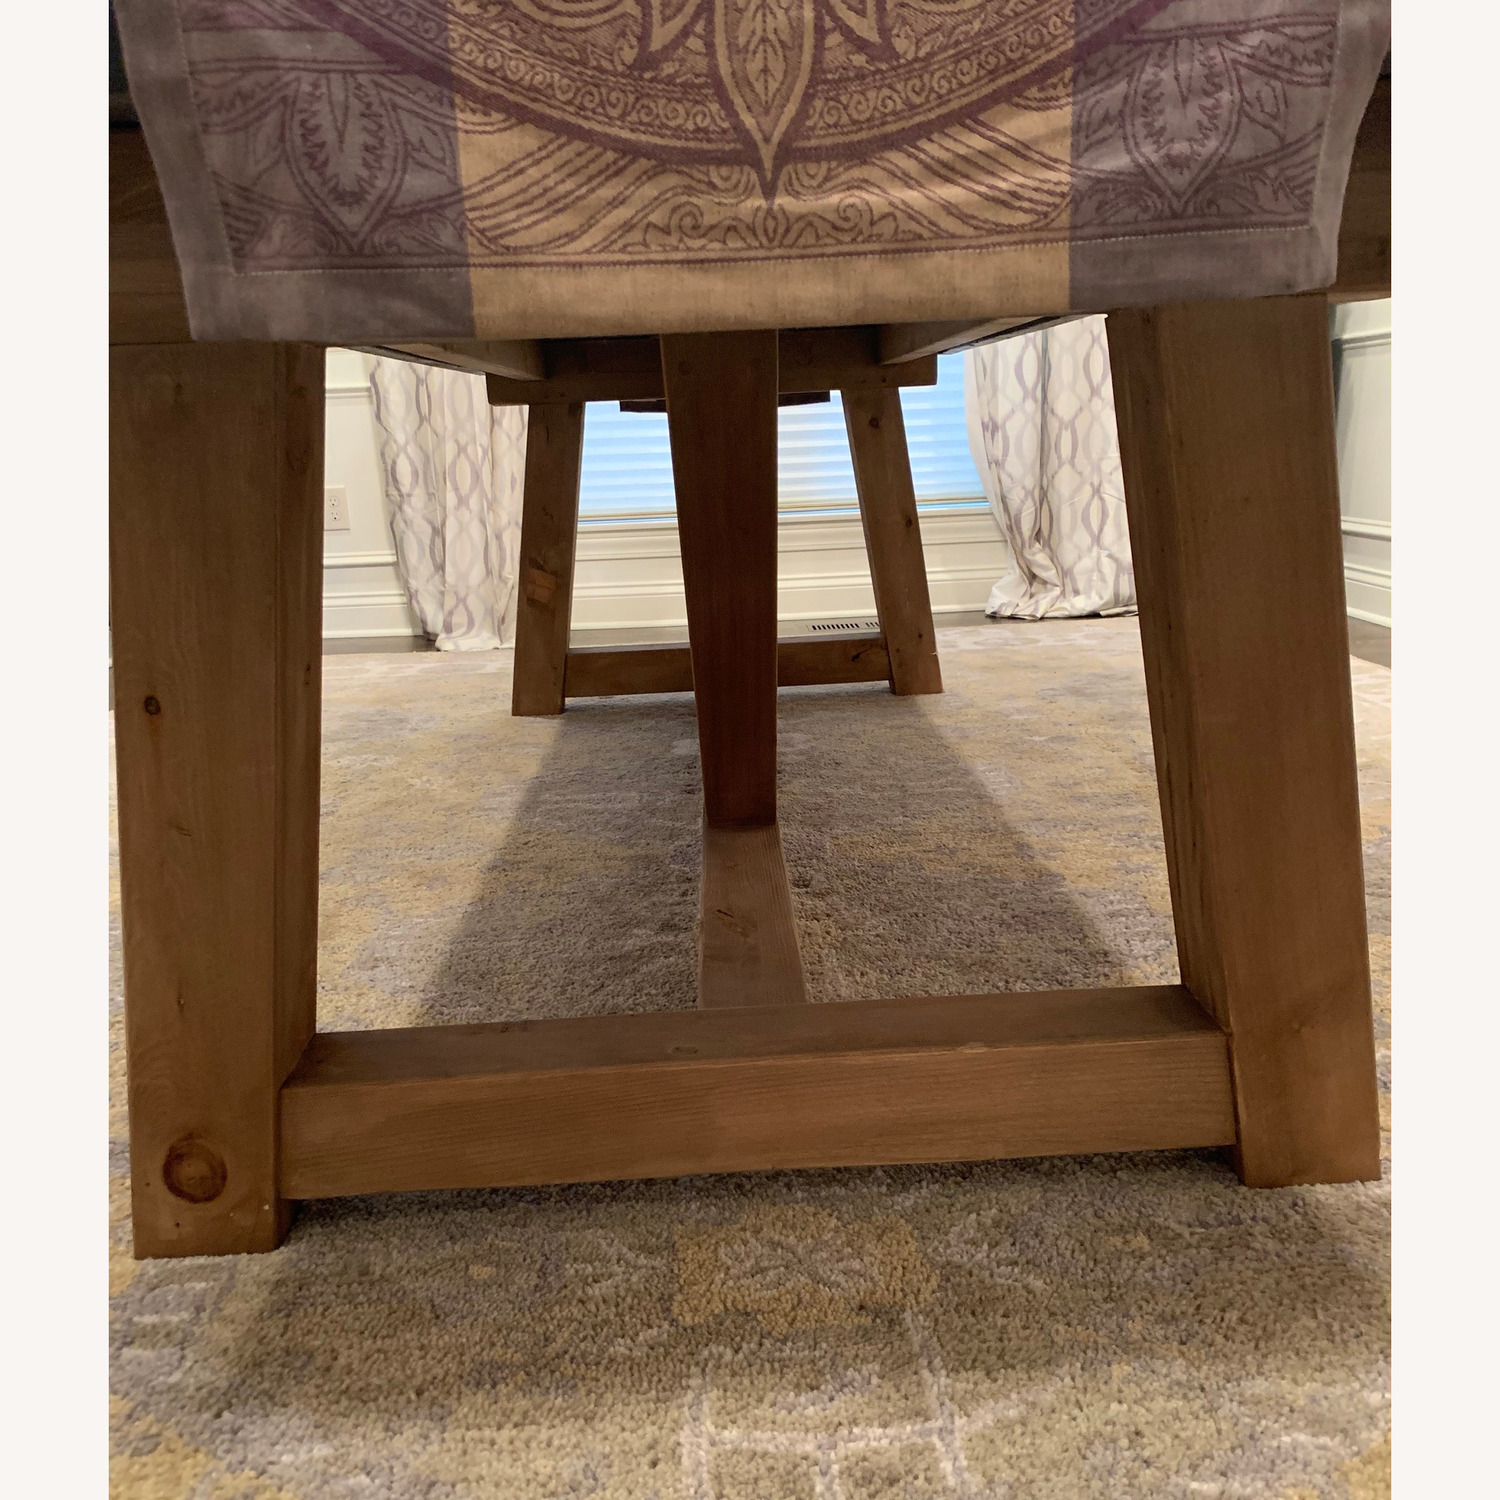 Restoration Hardware Salvaged Wood and Concrete Table - image-1